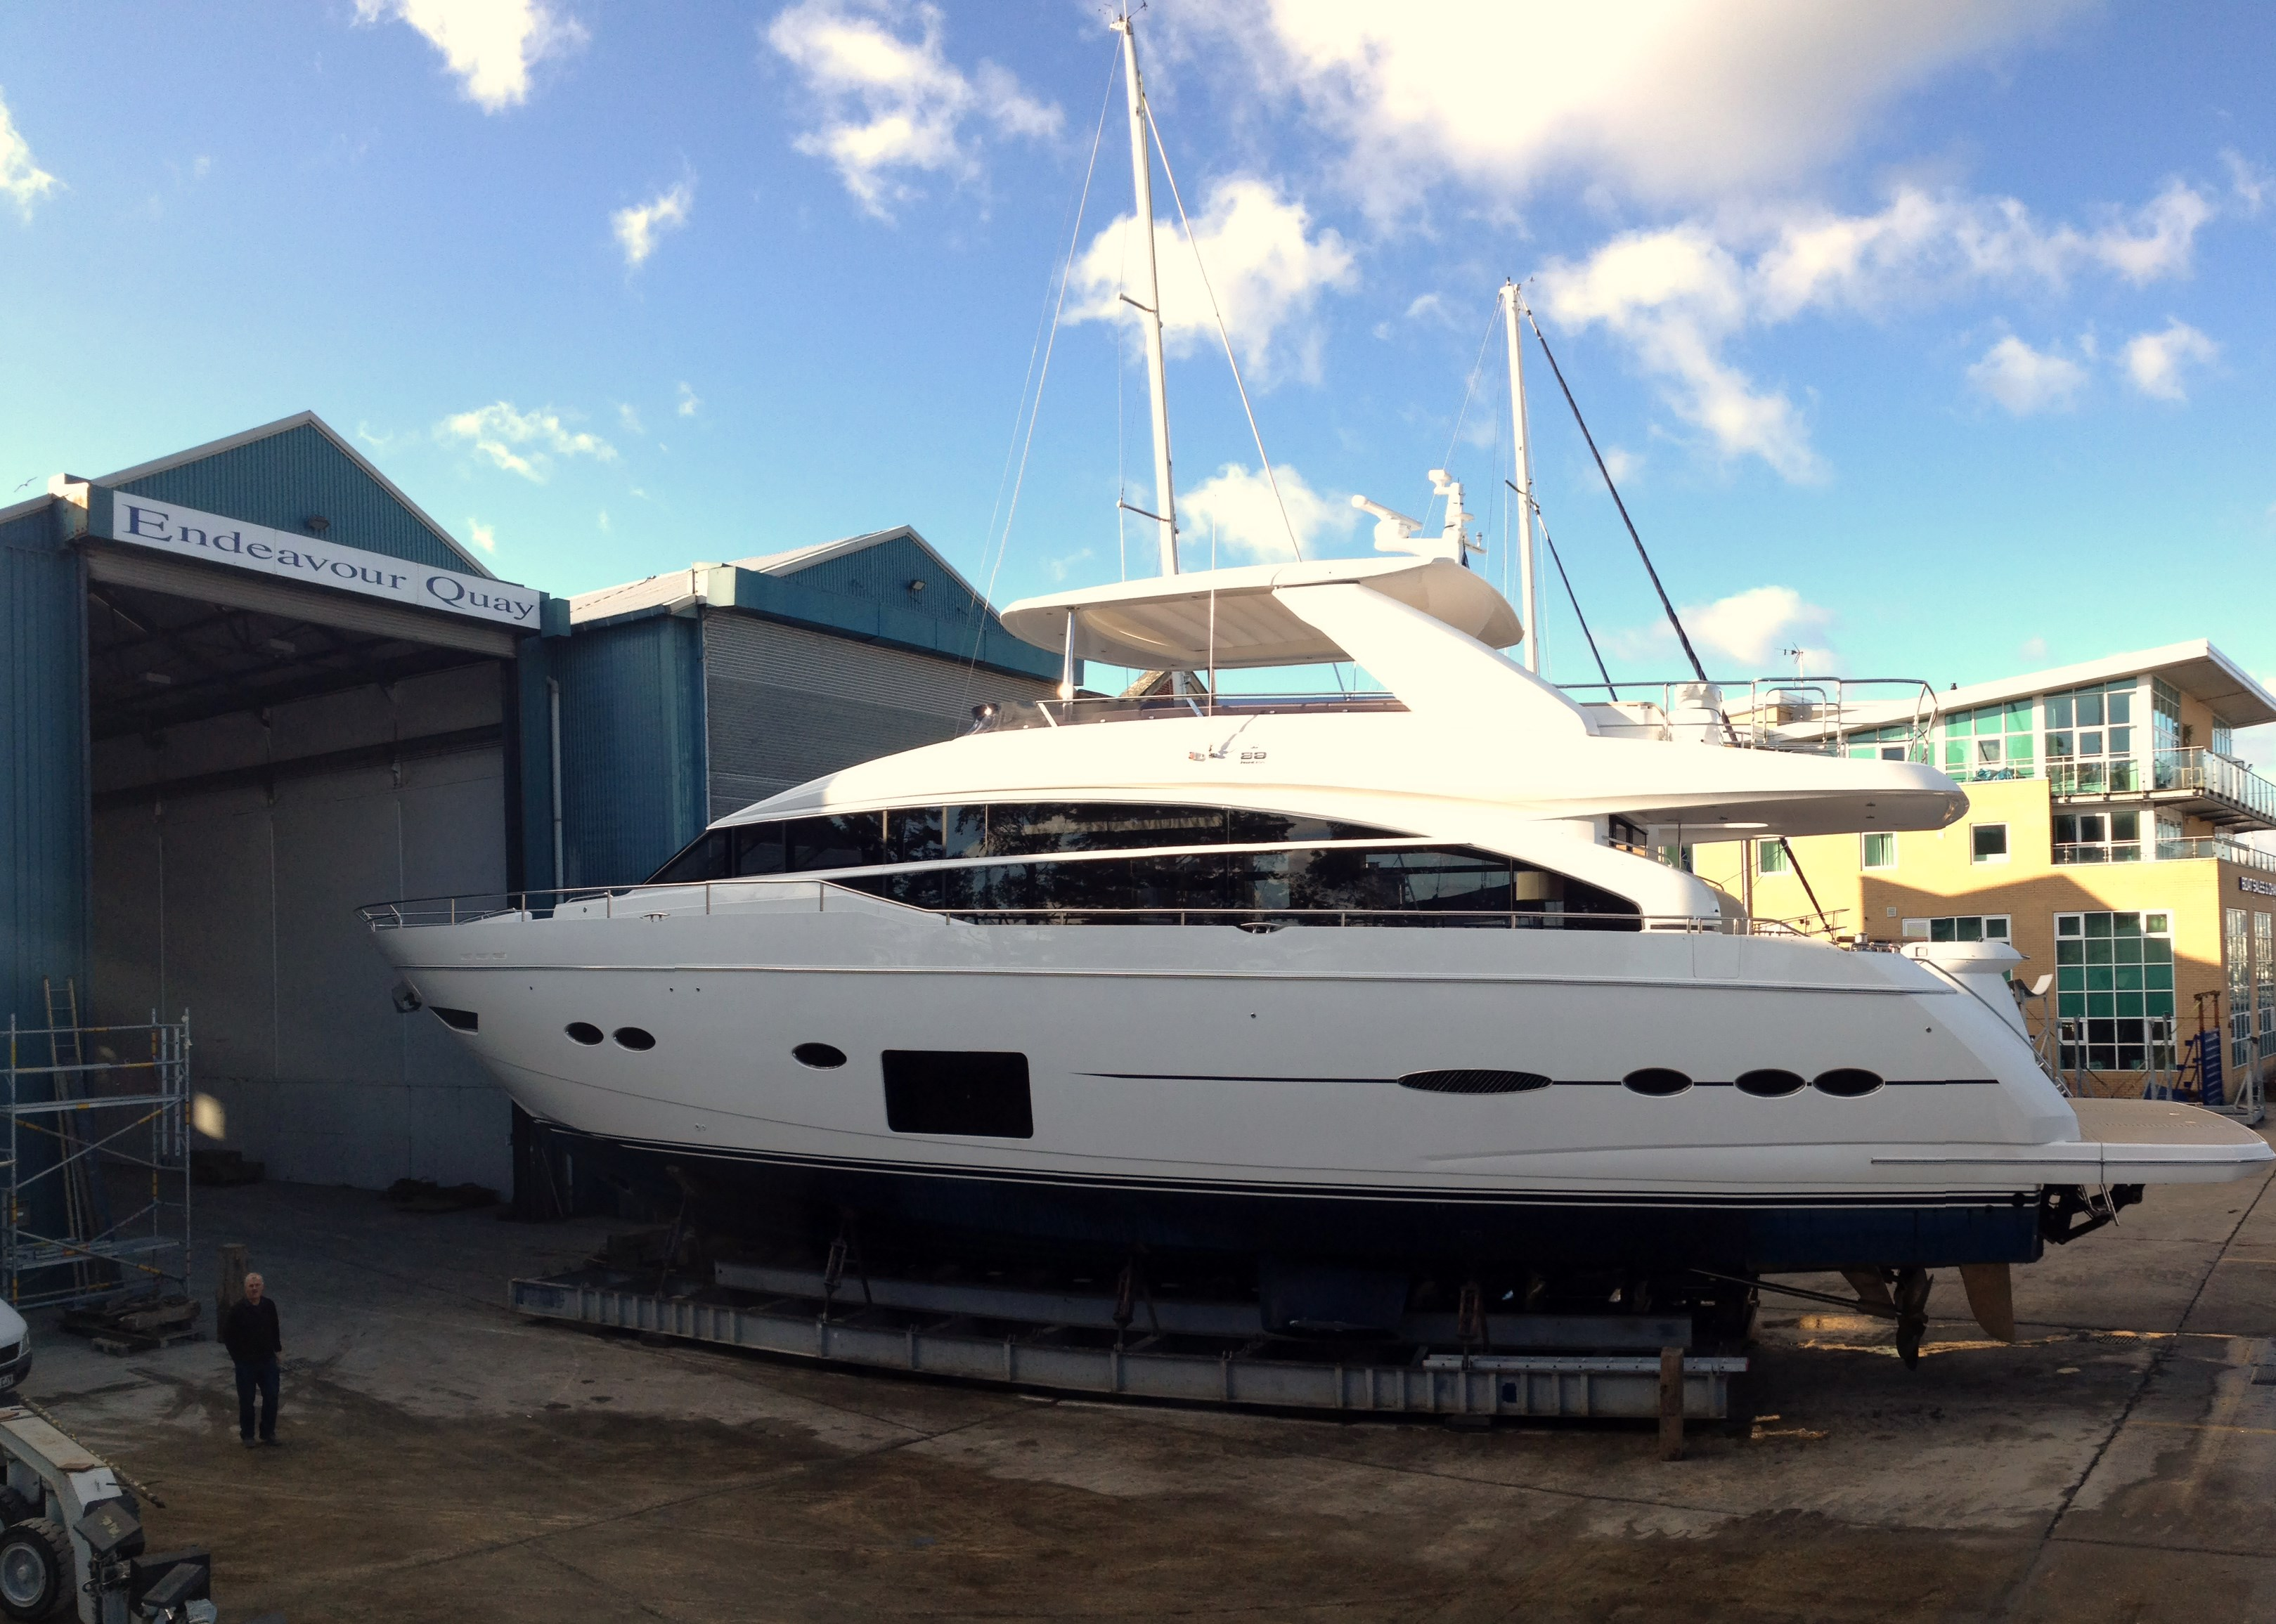 The Princess 88 Yacht At Endeavour Quay Before Re Spray